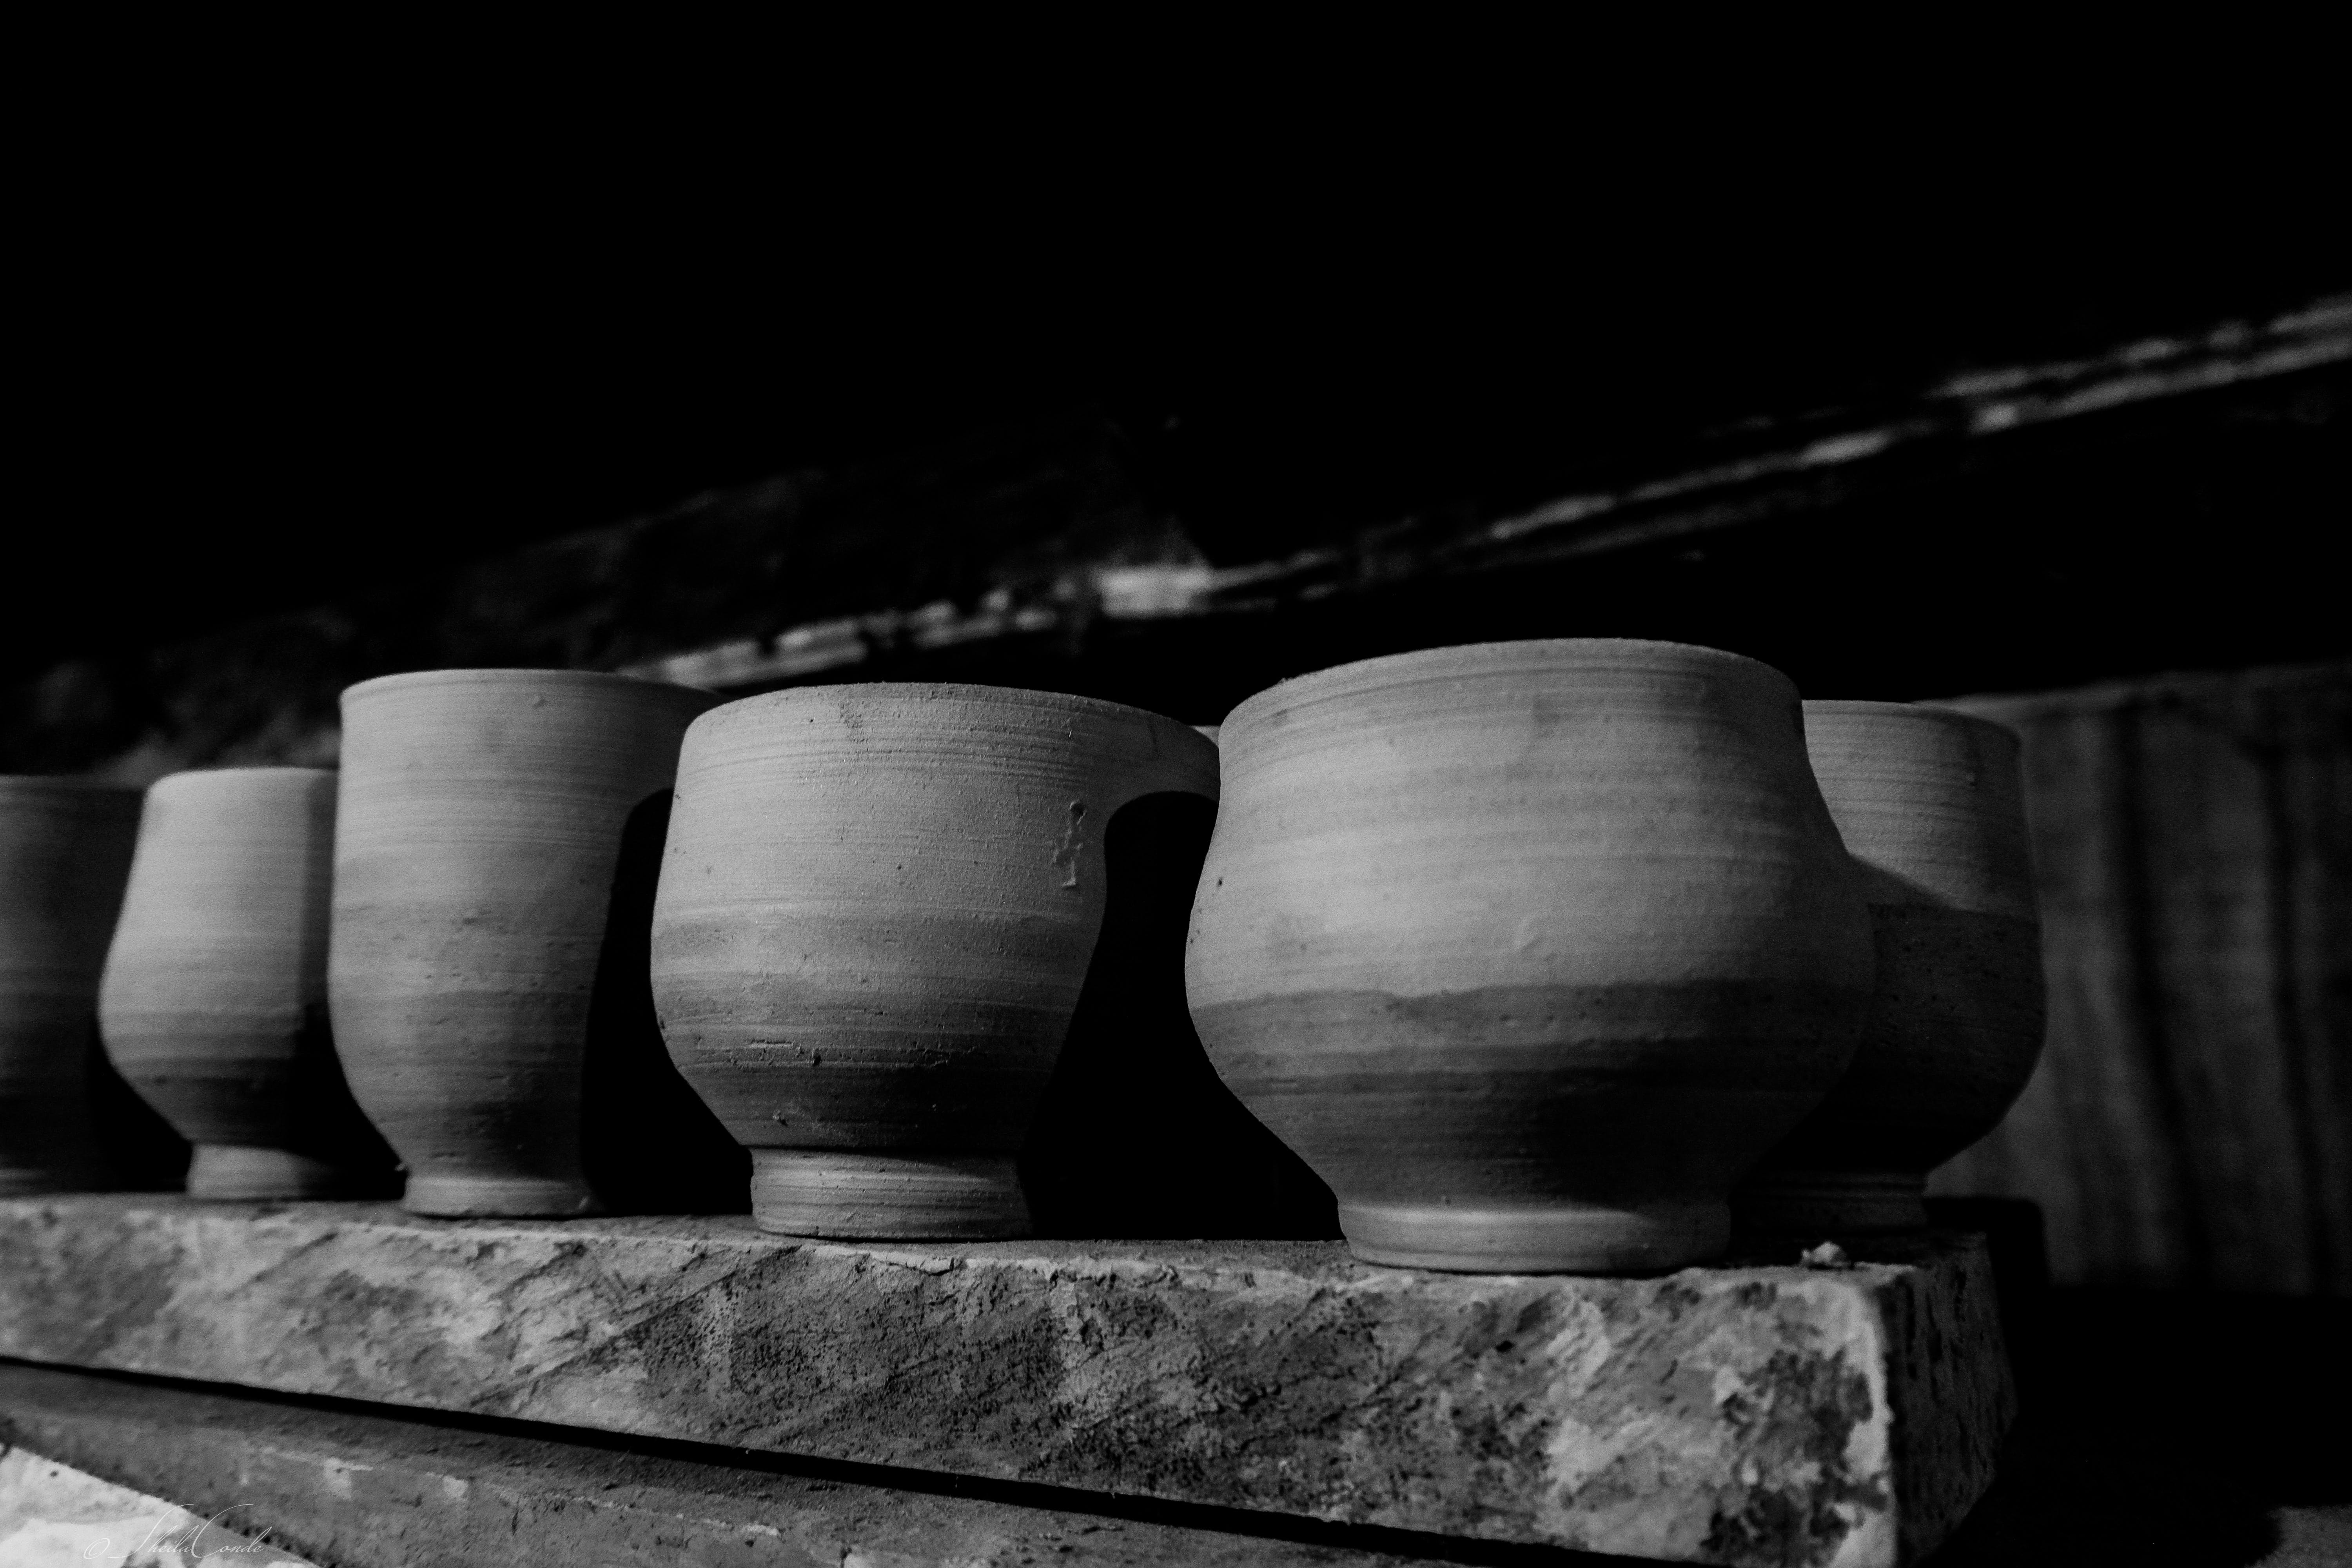 Free stock photo of black and white, clay art, monochrome, pottery